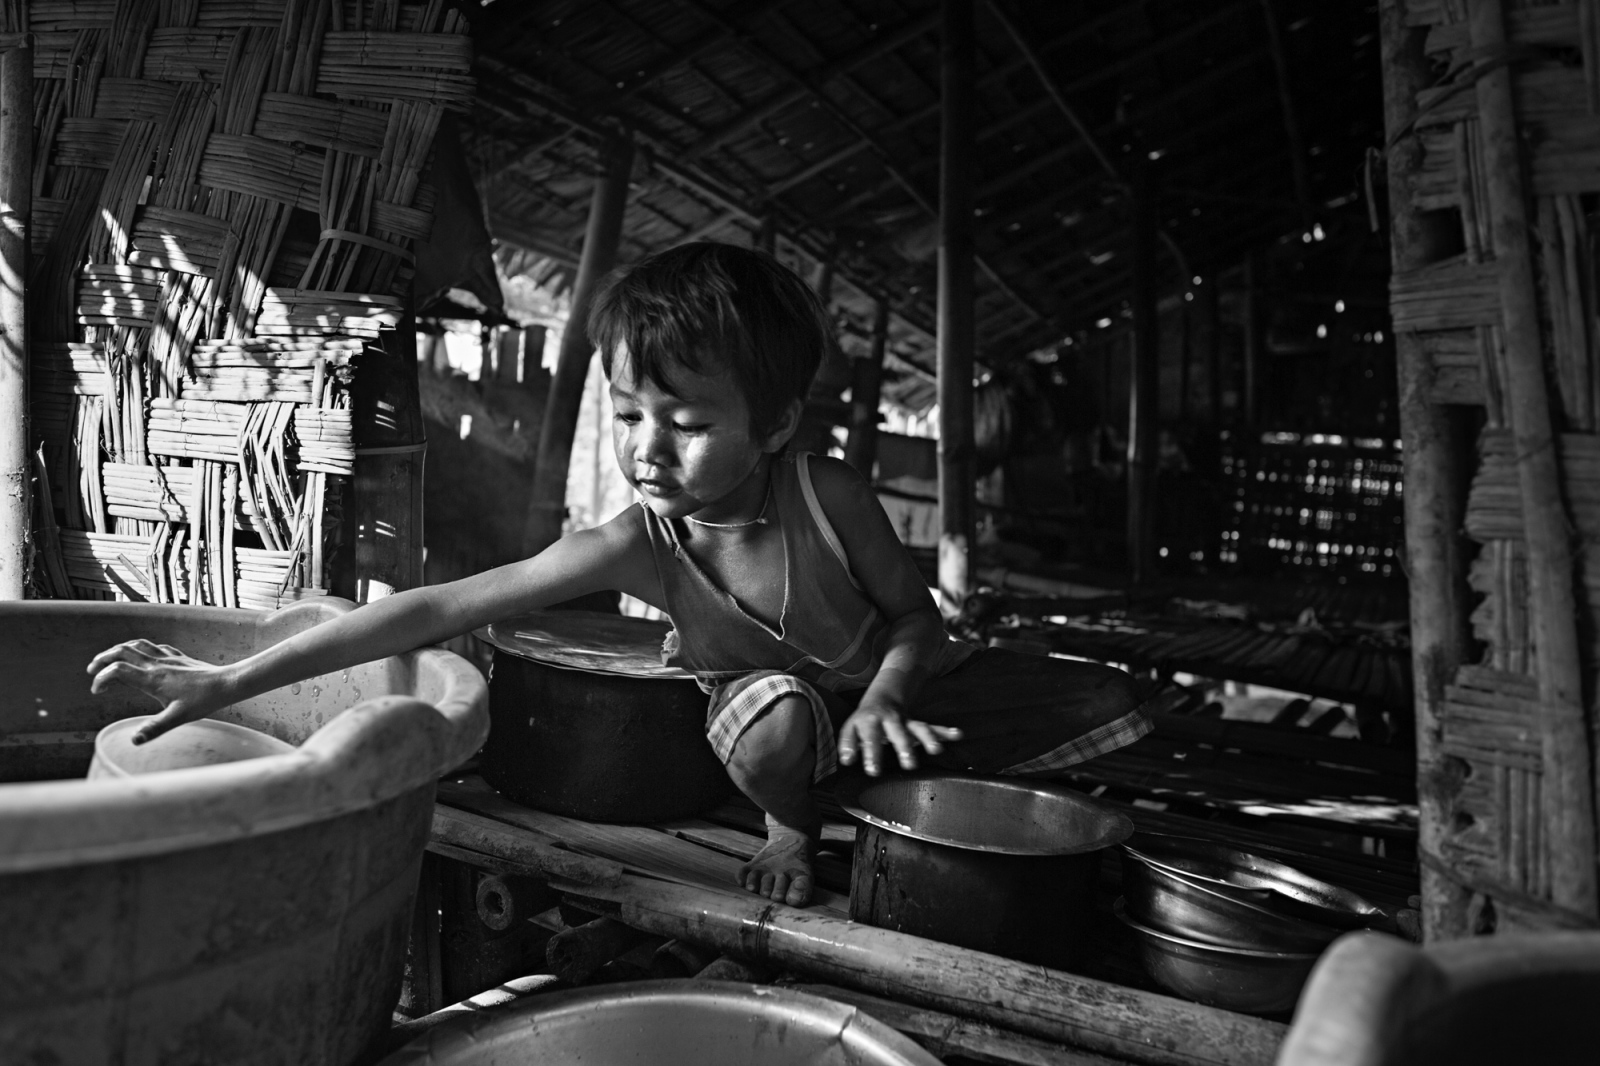 Saung Ning Wai washes dishes after supper.